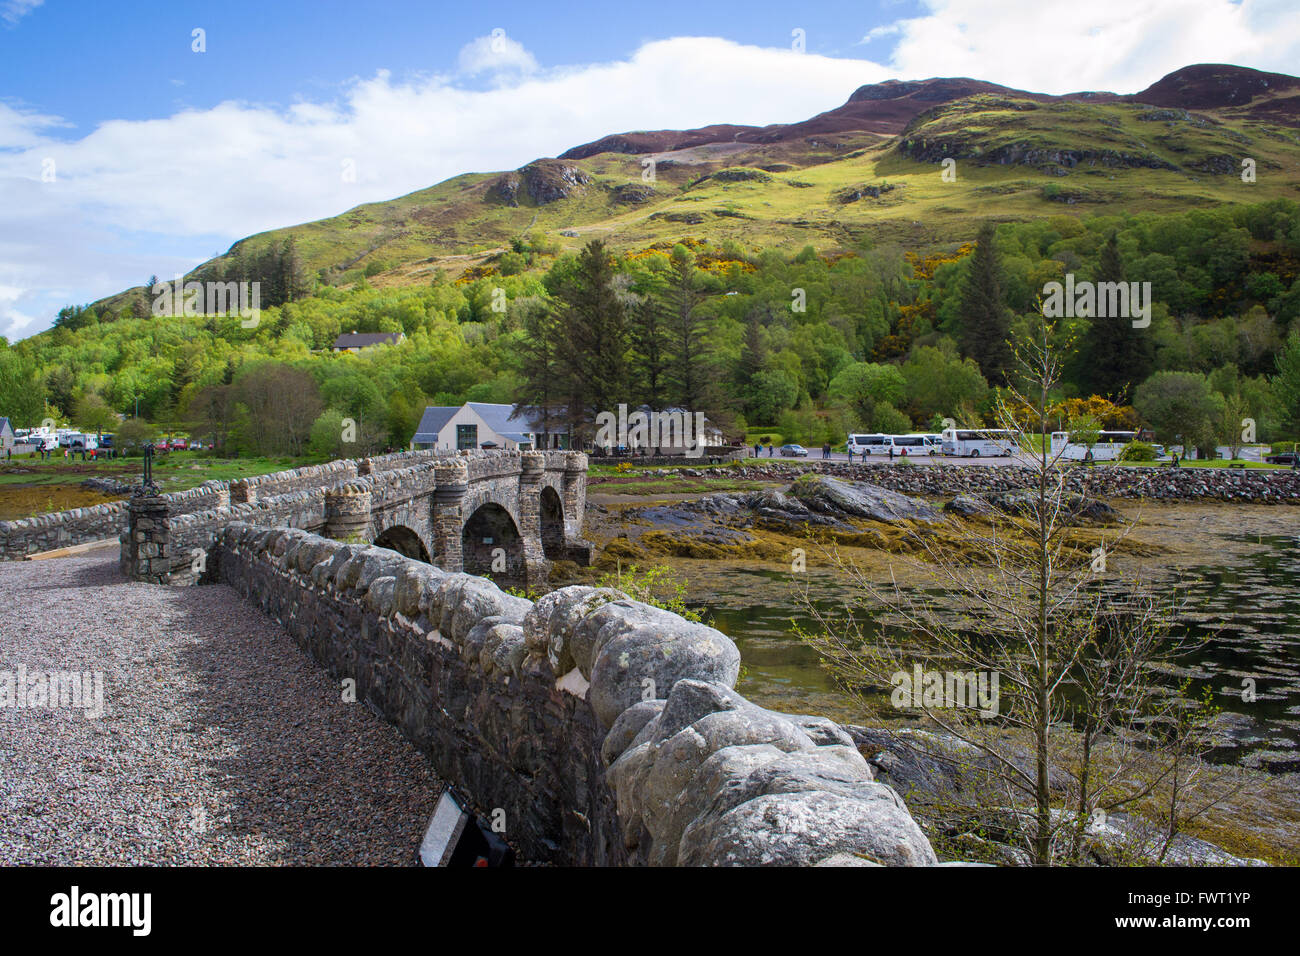 A view from Eilean Donan Castle across the bridge towards the visitor centre. - Stock Image